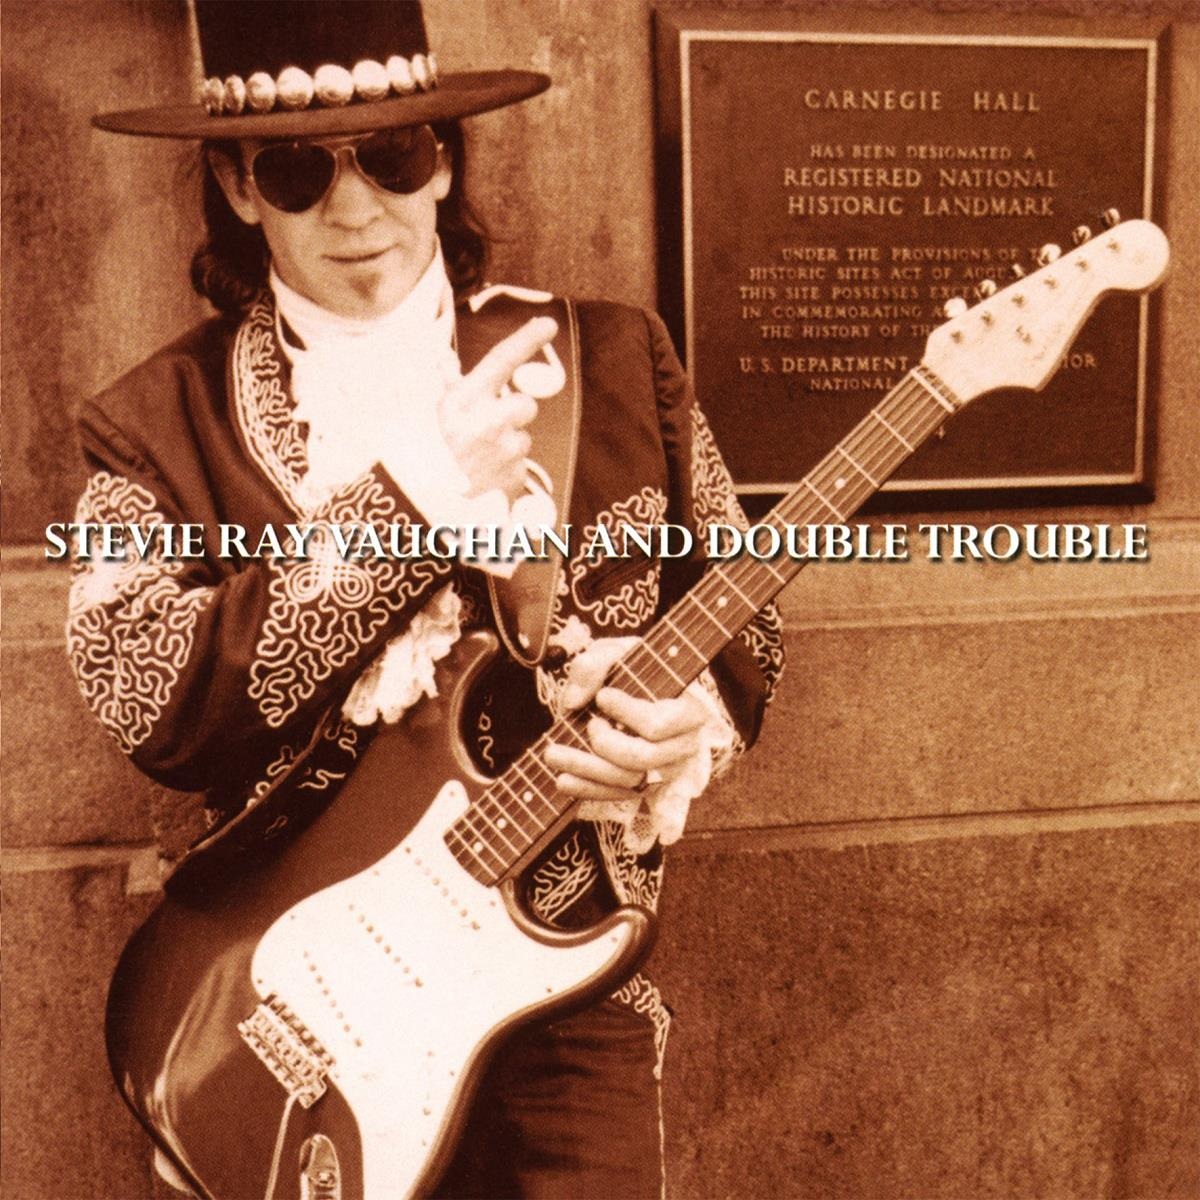 MOVLP1316 Music on Vinyl  Stevie Ray Vaughan & Double Trouble Live at Carnegie Hall (2LP)